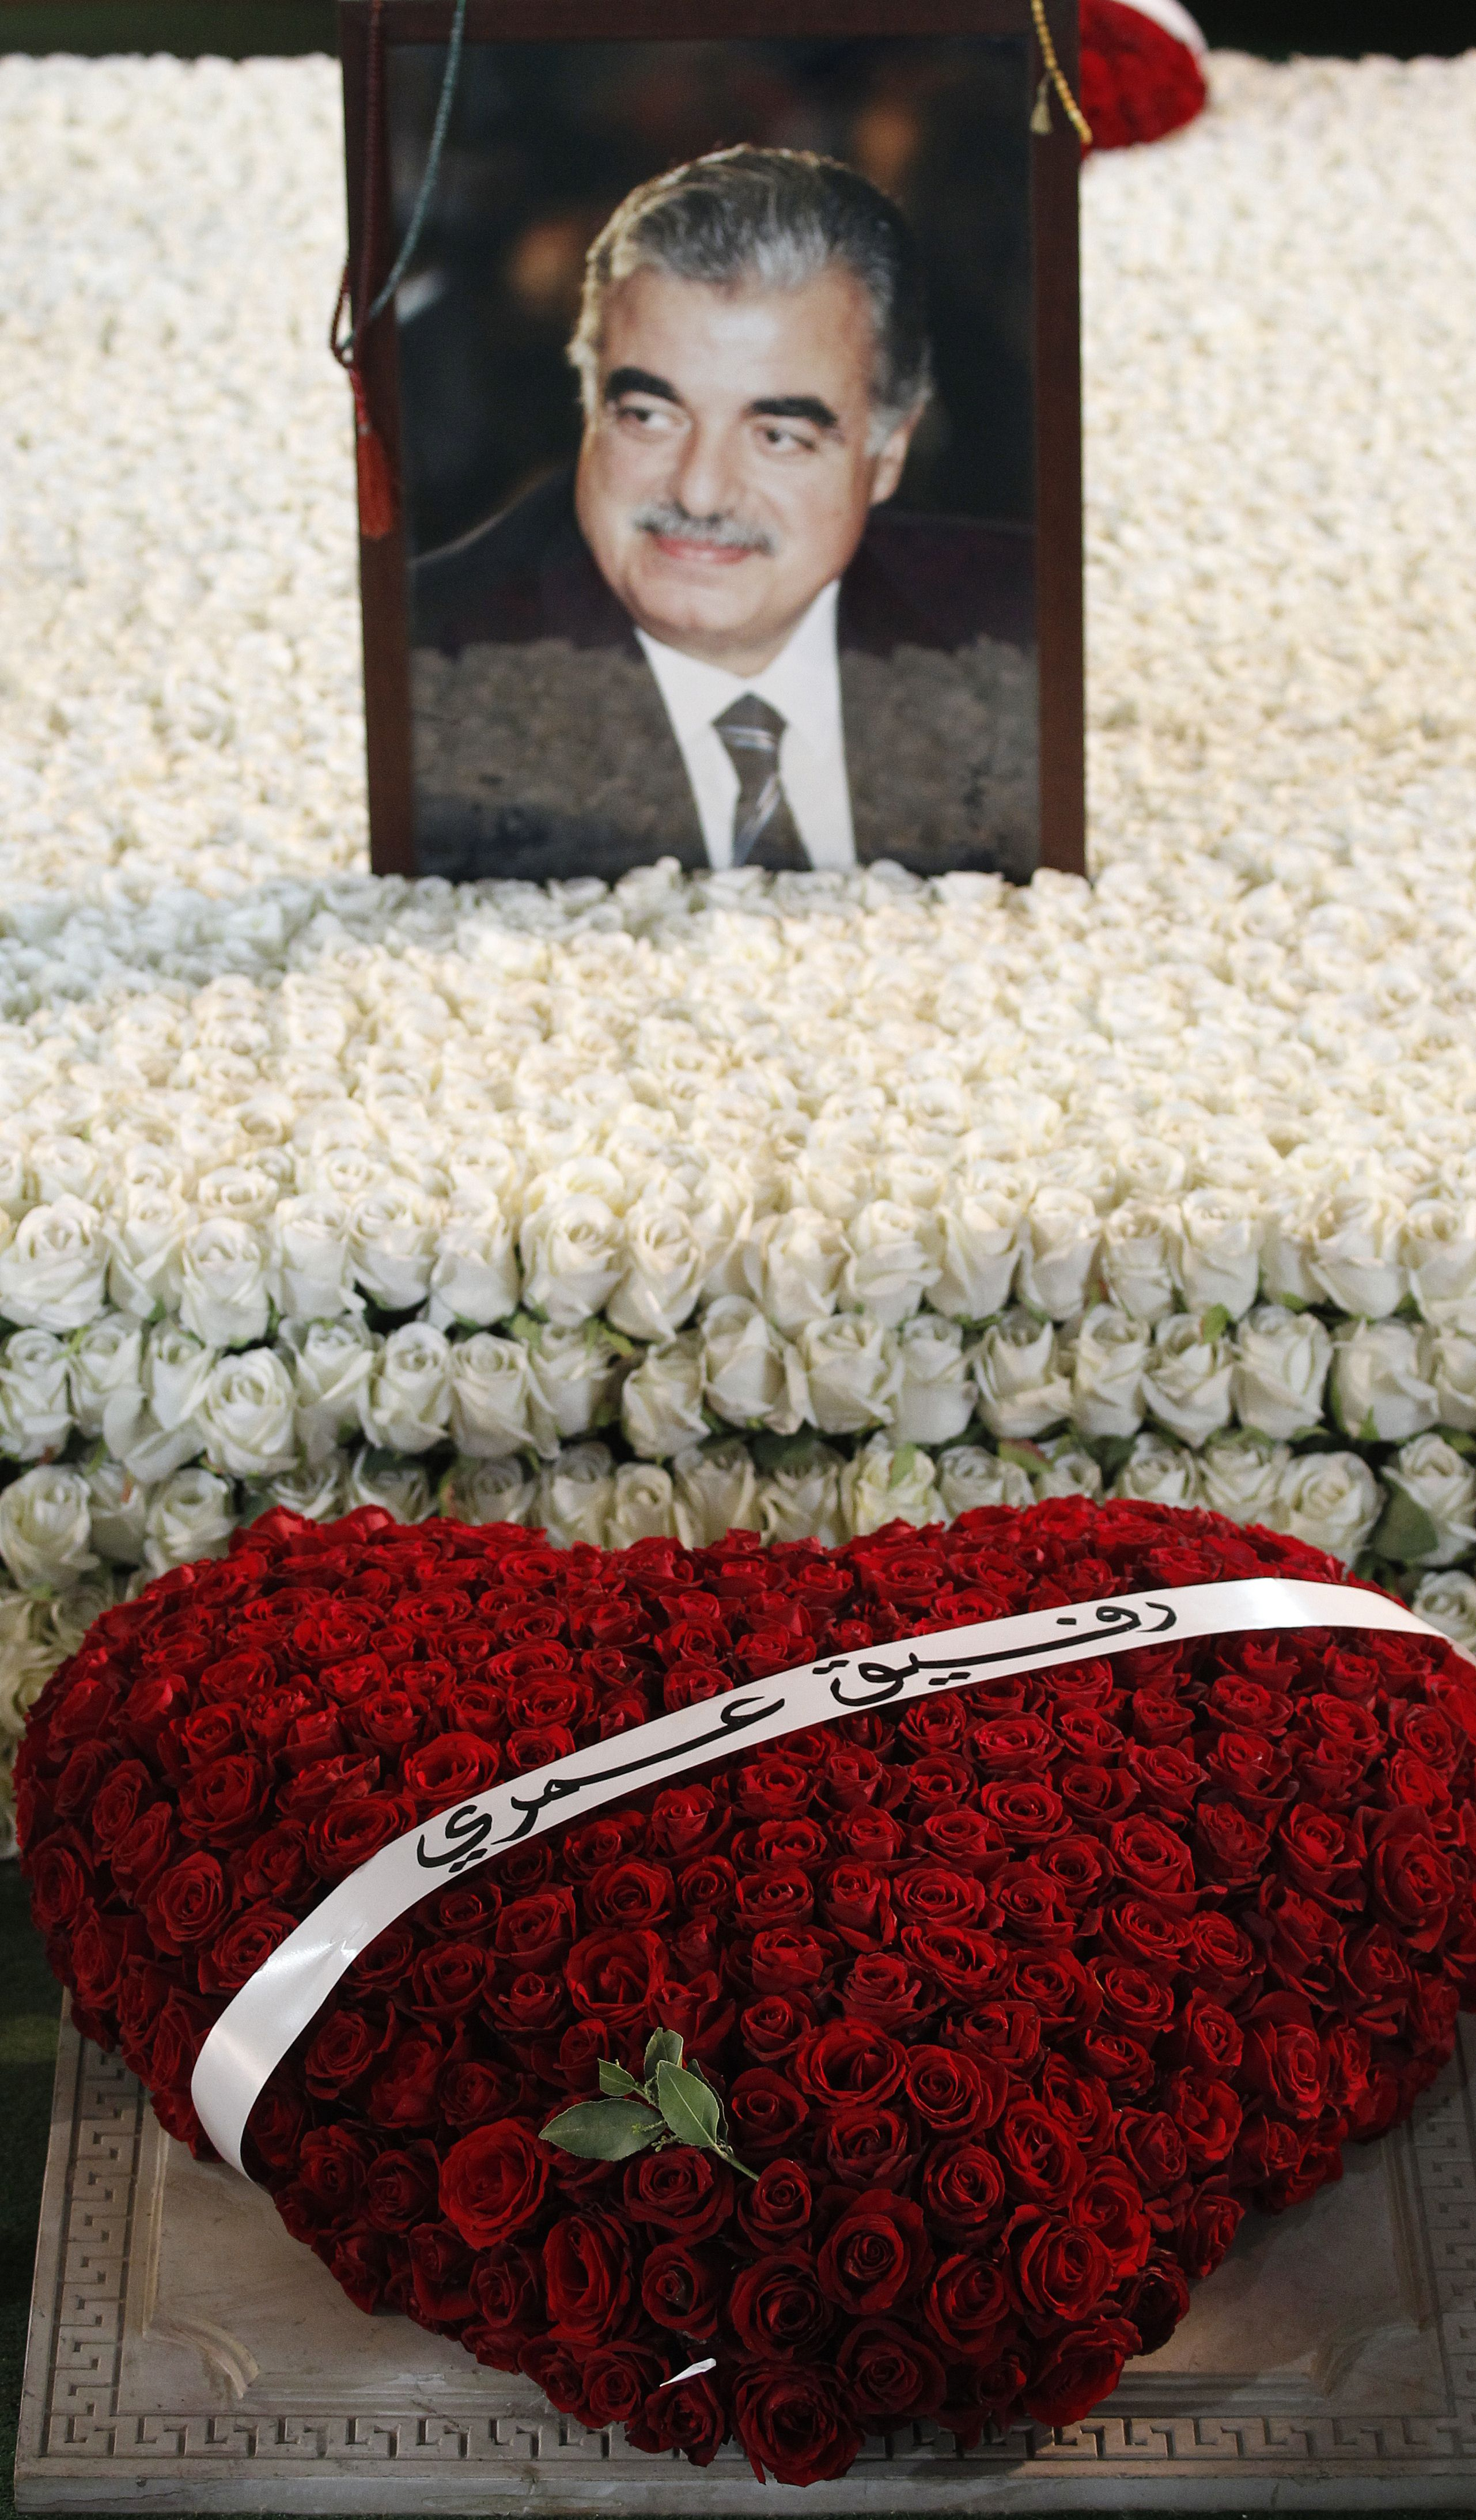 """A heart-shaped red roses bouquet adorns the grave of former Lebenese prime minister Rafiq Hariri (portrait), on the ninth anniversary of his death, in Beirut on February 14, 2014. The wreath was sent by his wife Nazik and reads in Arabic, """"my life partner"""".  (AFP PHOTO/ANWAR AMRO)"""